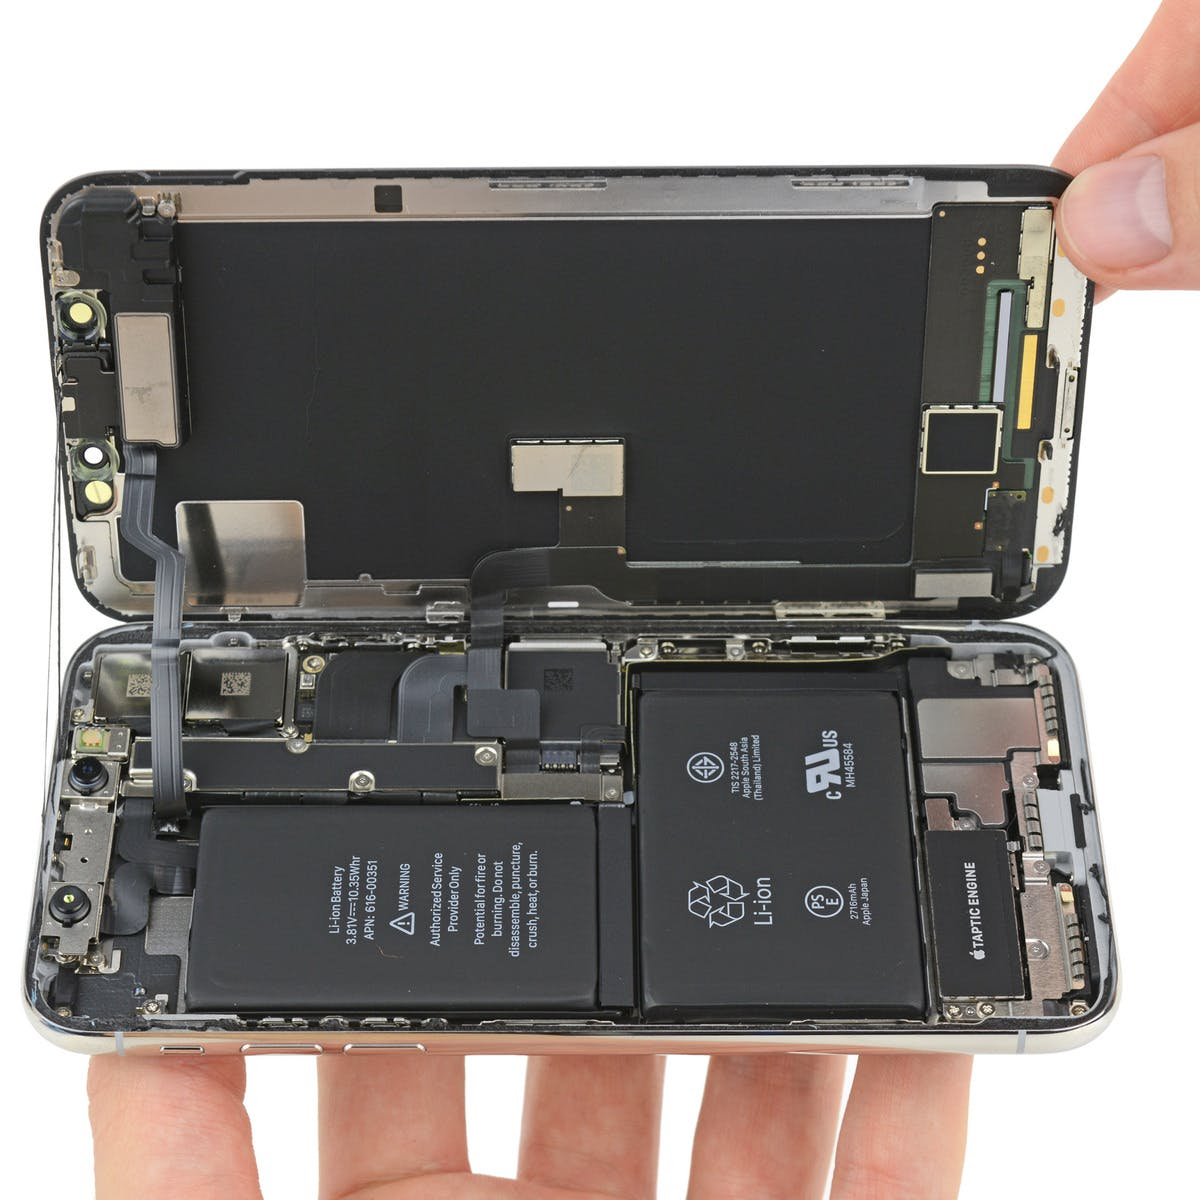 iPhone X: Taking Phone Apart Reveals Why You Really Shouldn